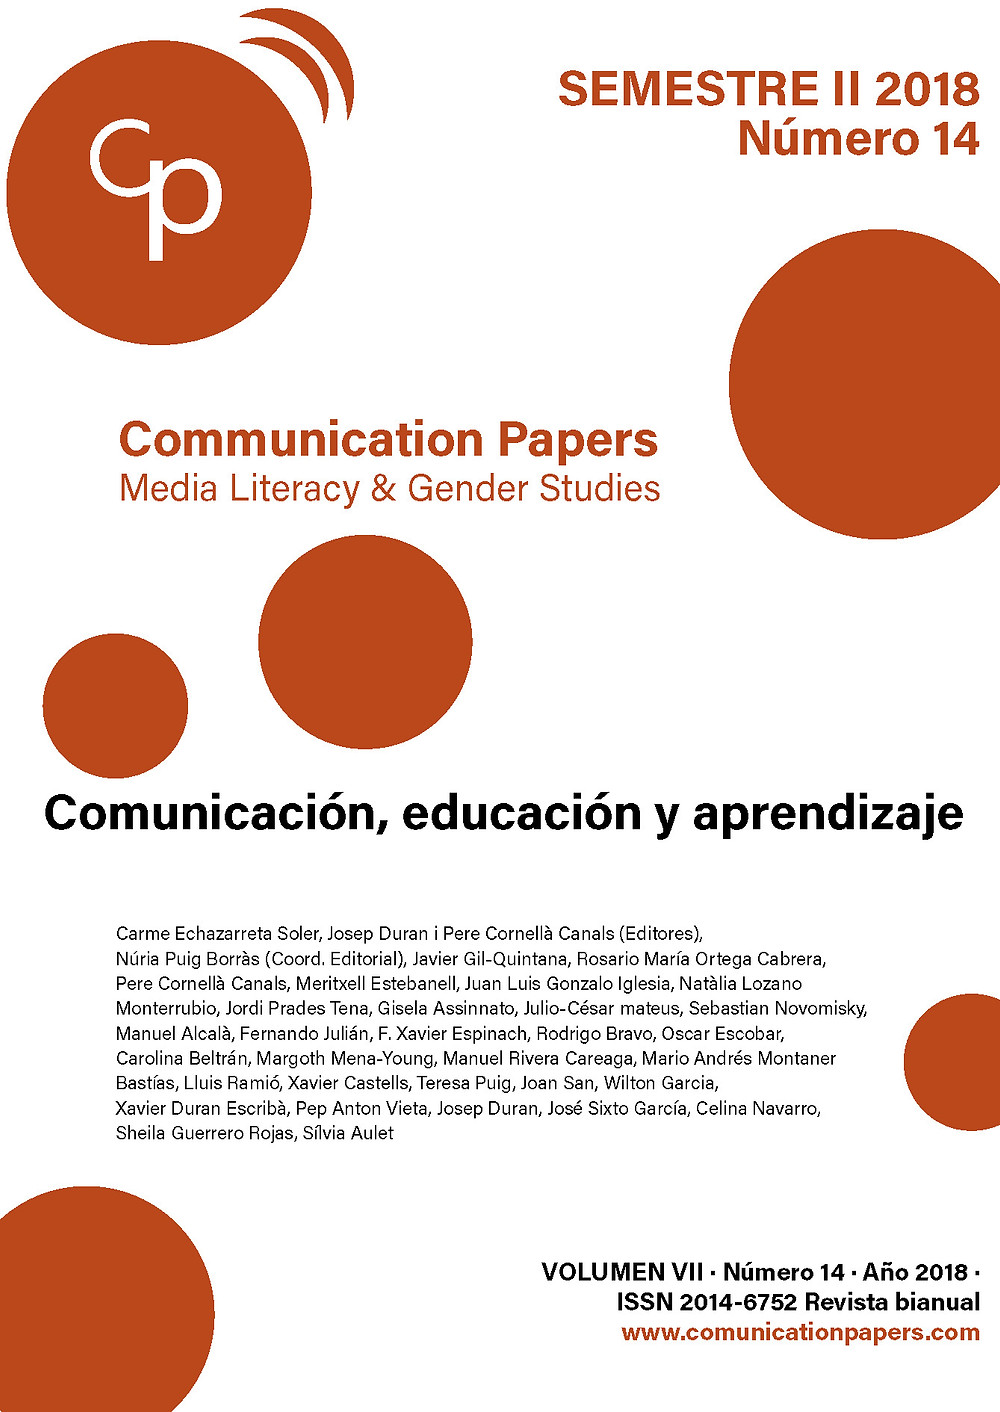 Communication Papers n.14